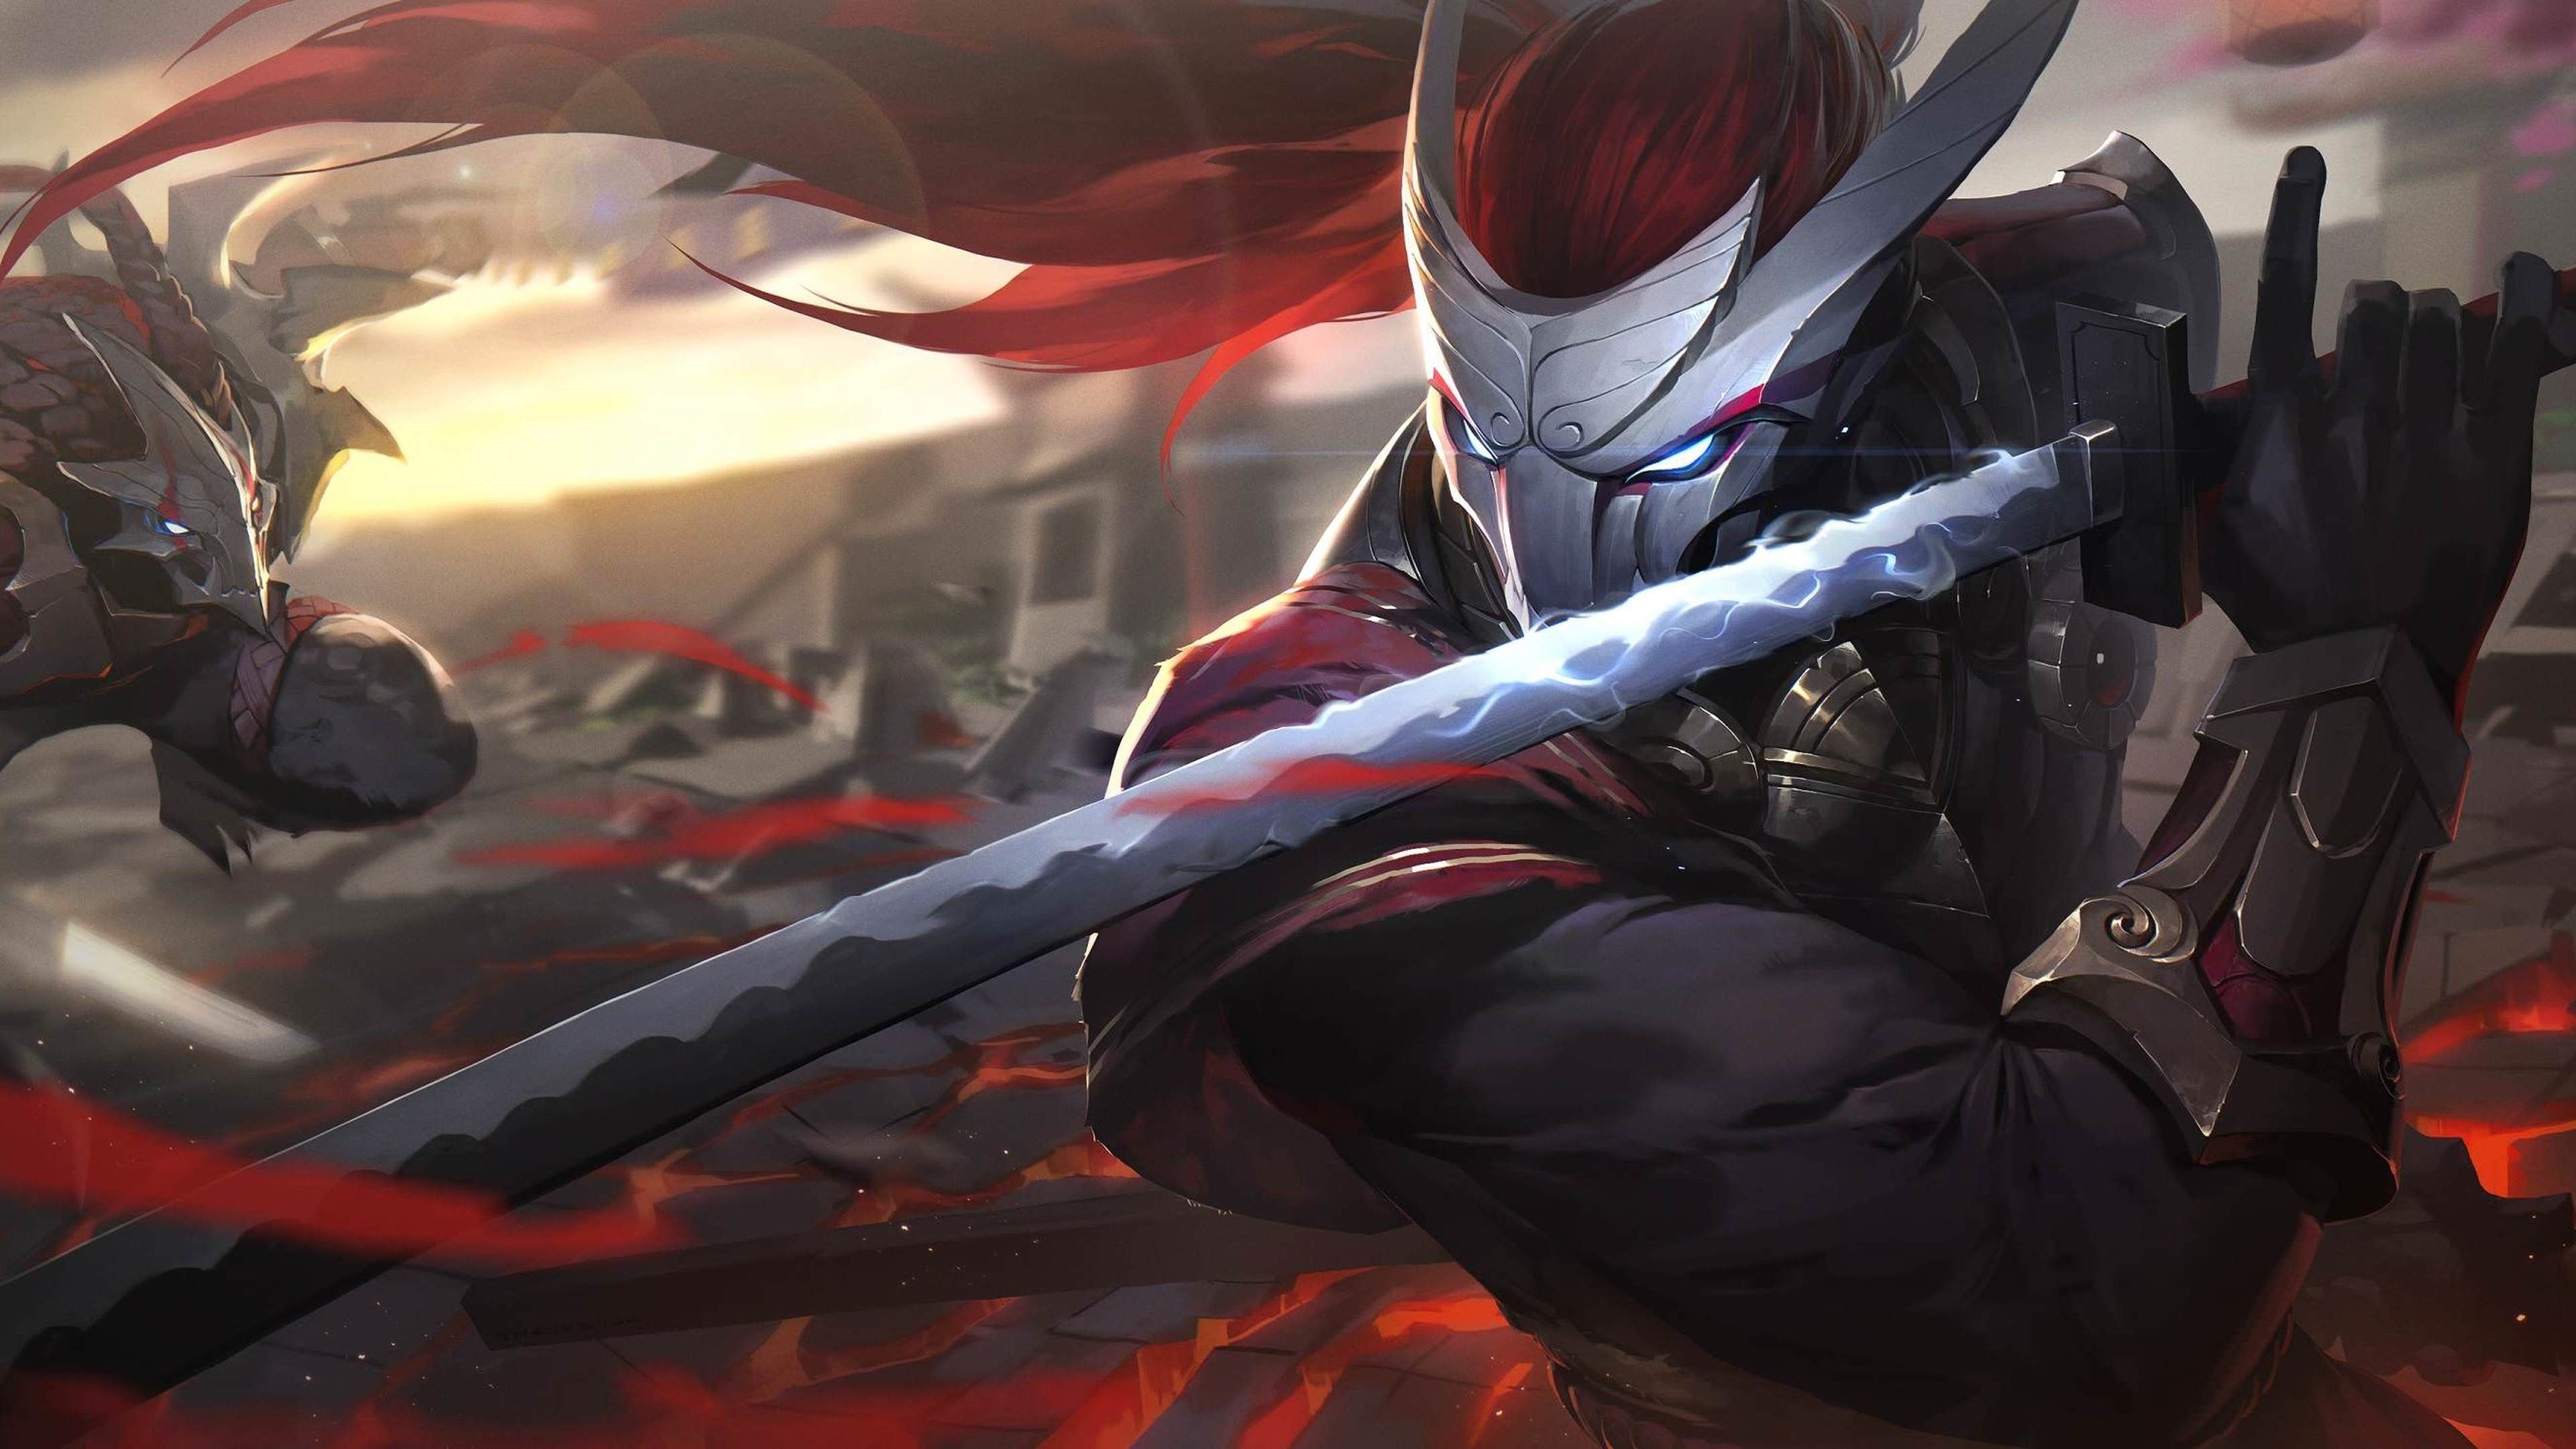 Rengar And Yasuo League Of Legends League Of Legends Wallpapers Hd Wallpapers Games Wallpapers League Of Legends Yasuo League Of Legends Poster Yasuo League